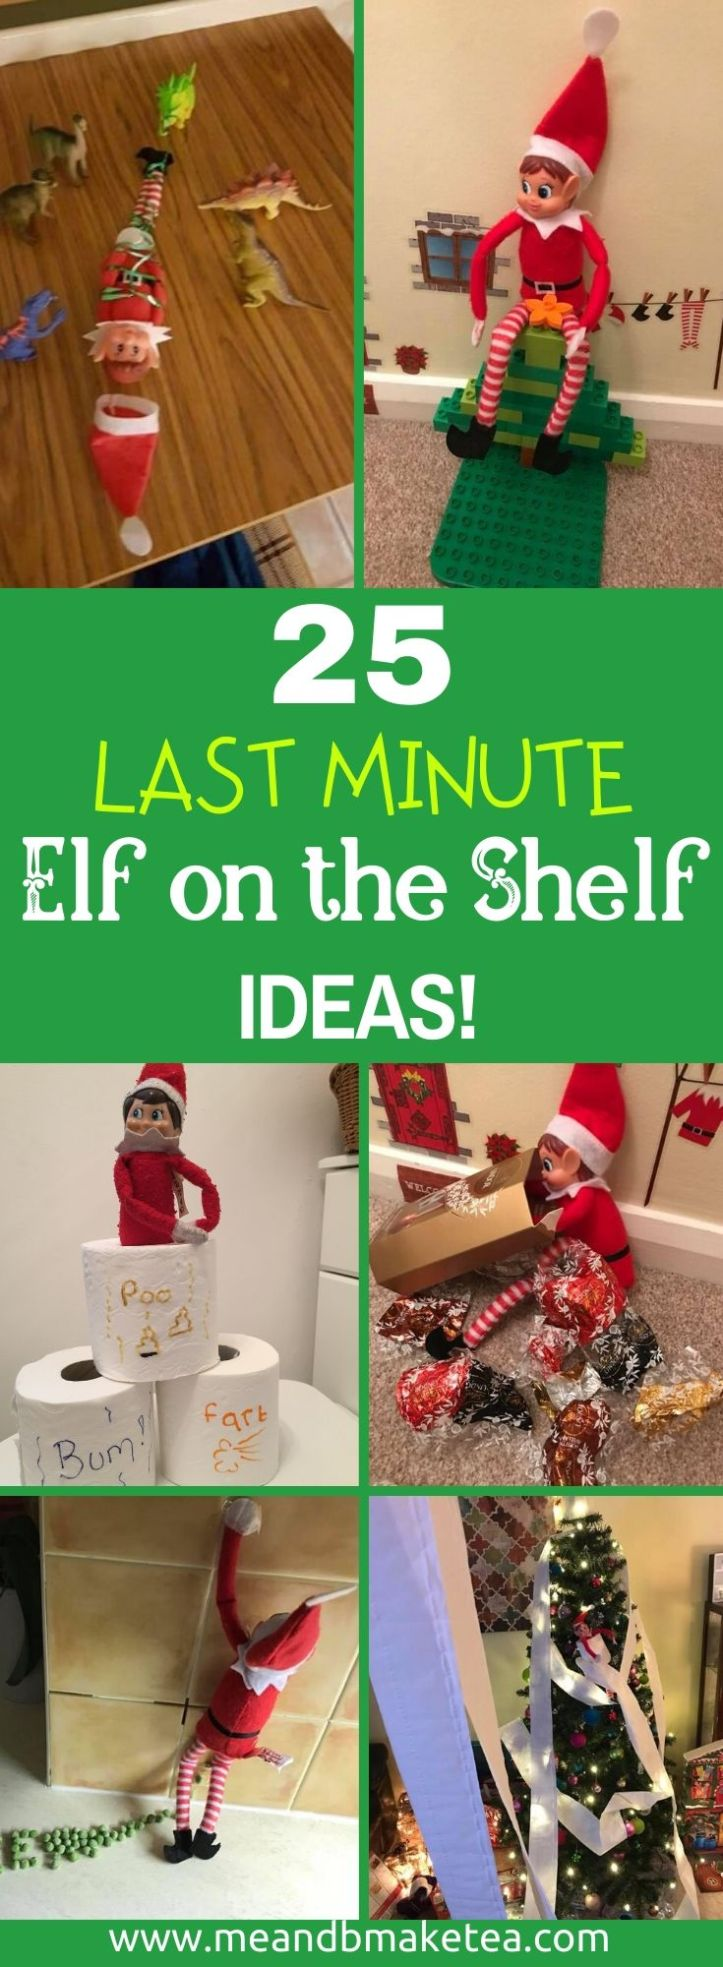 pinterest - 25 last minute elf on the shelf tricks and ideas to play